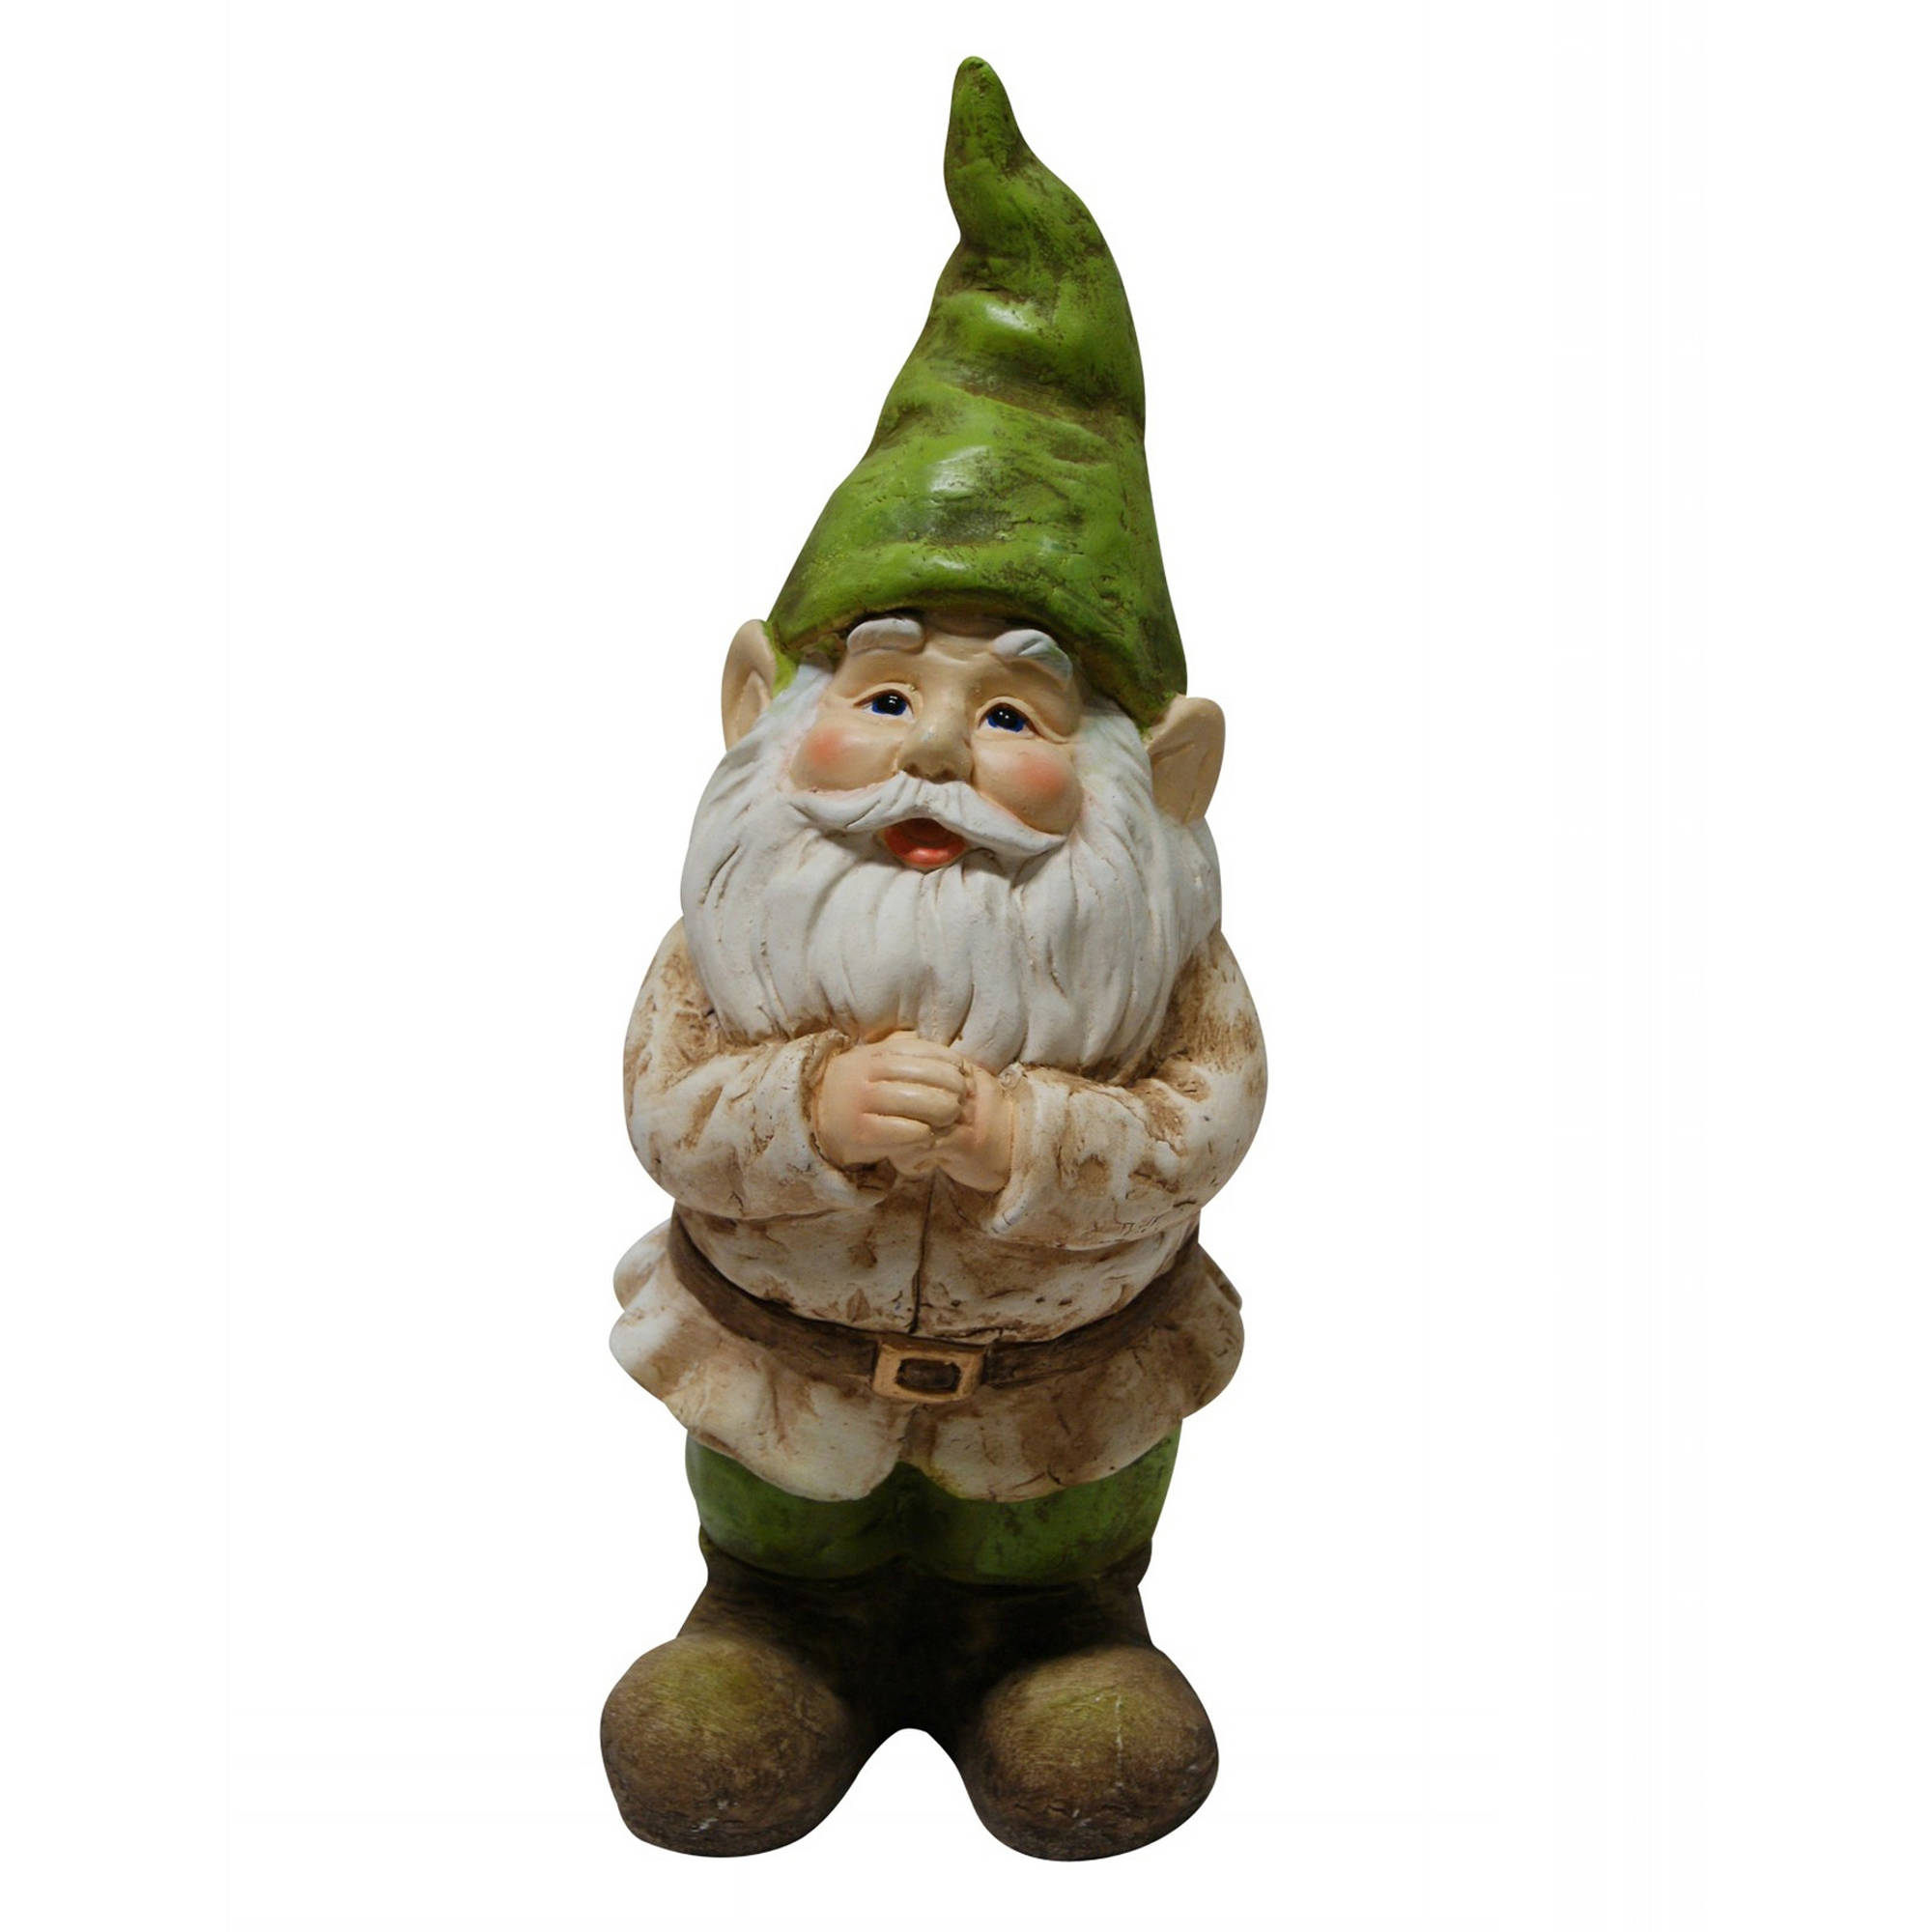 Alpine Gnome Folding Hands Garden Statue, 12 Inch Tall